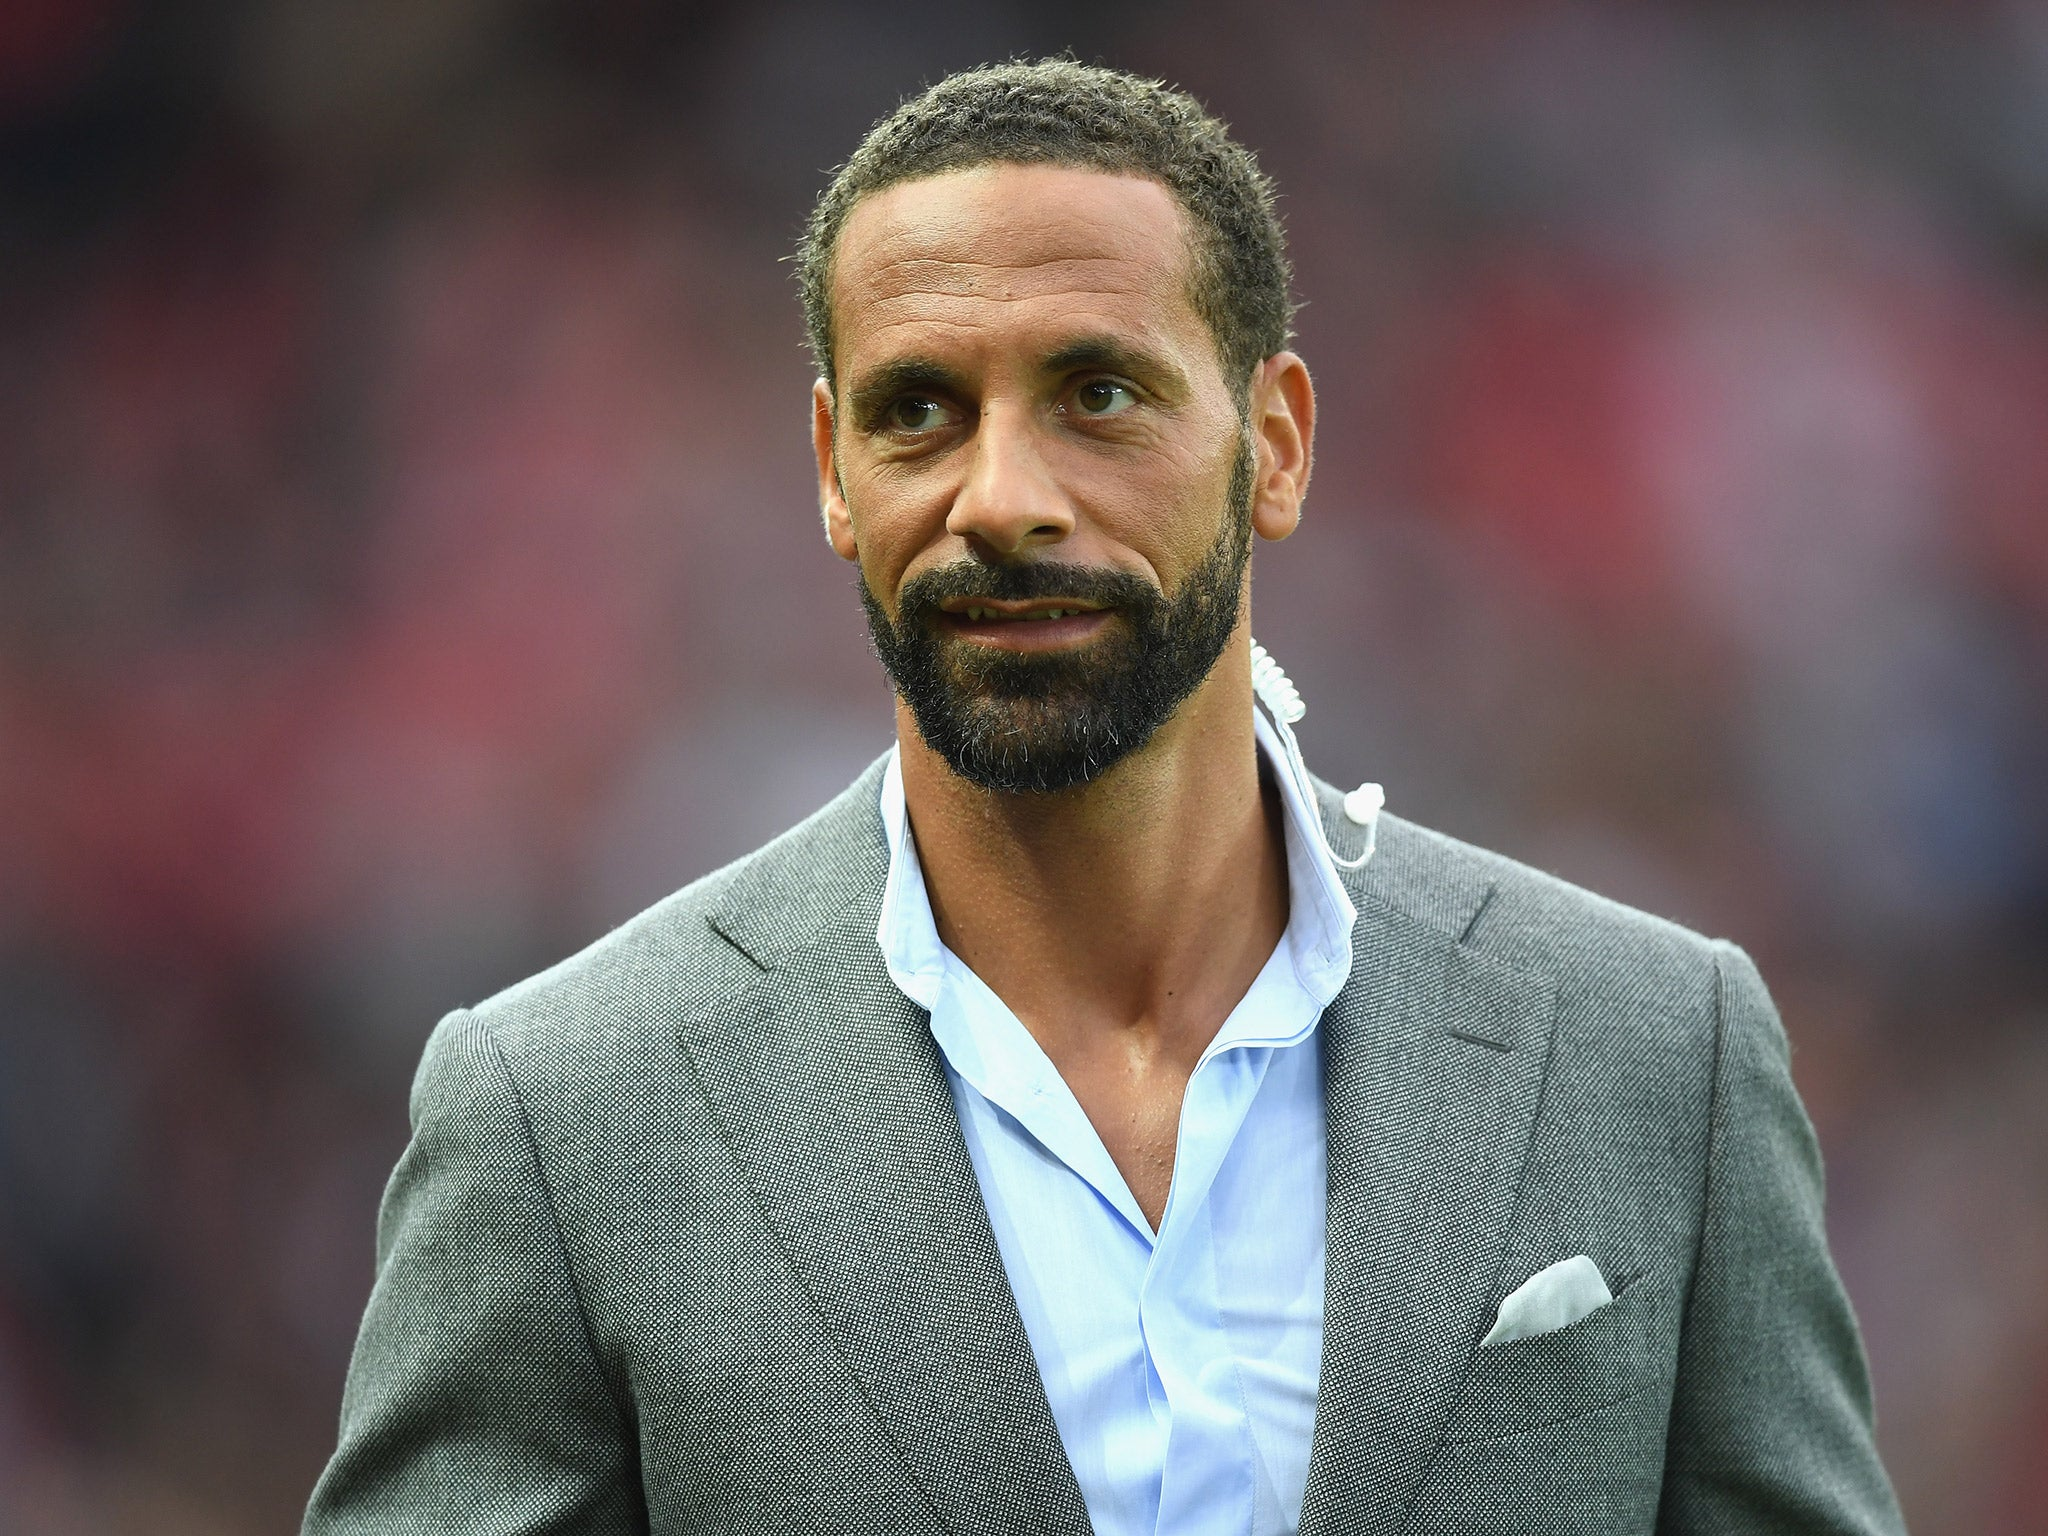 Rio Ferdinand donates £500 000 worth of toys to children who would